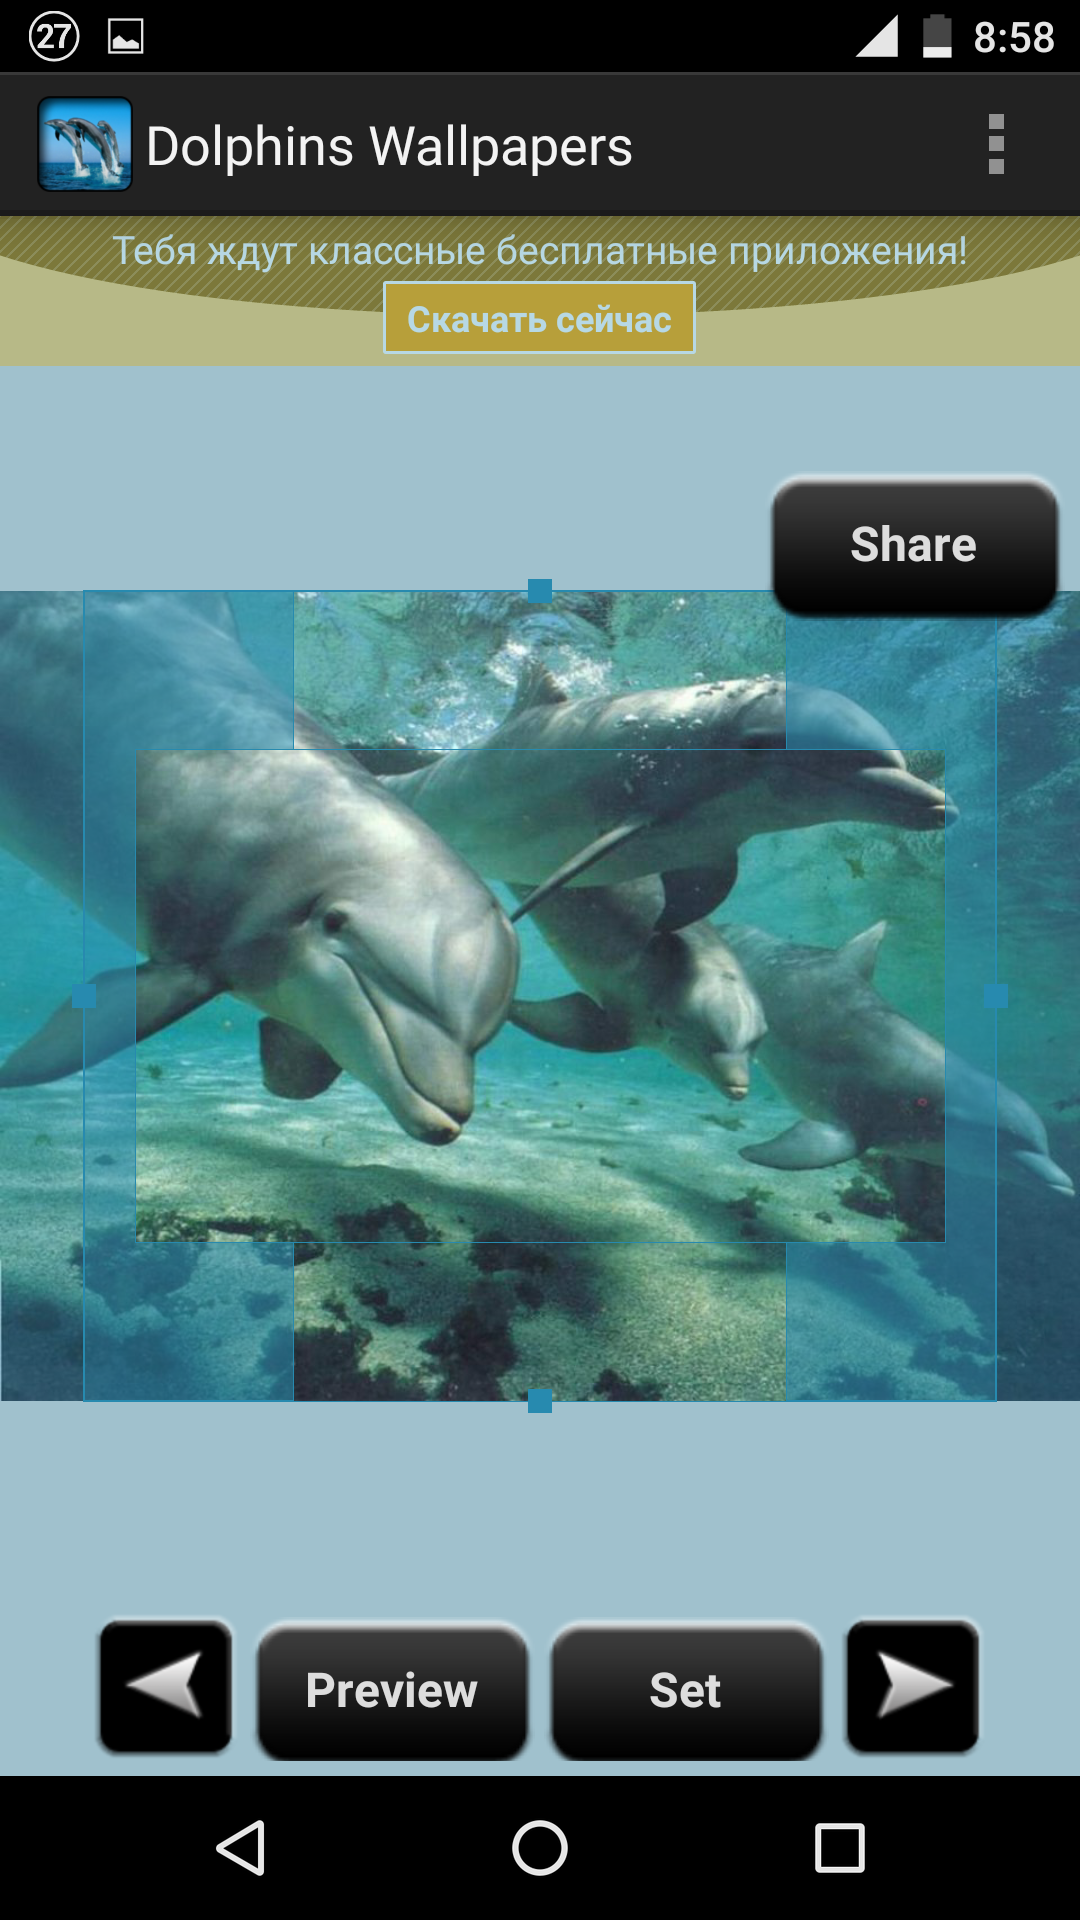 Animal wallpaper dolphins wallpaper wide very high resolution hd pictures of dolphins wallpapers wallpapers hd wallpapers voltagebd Gallery